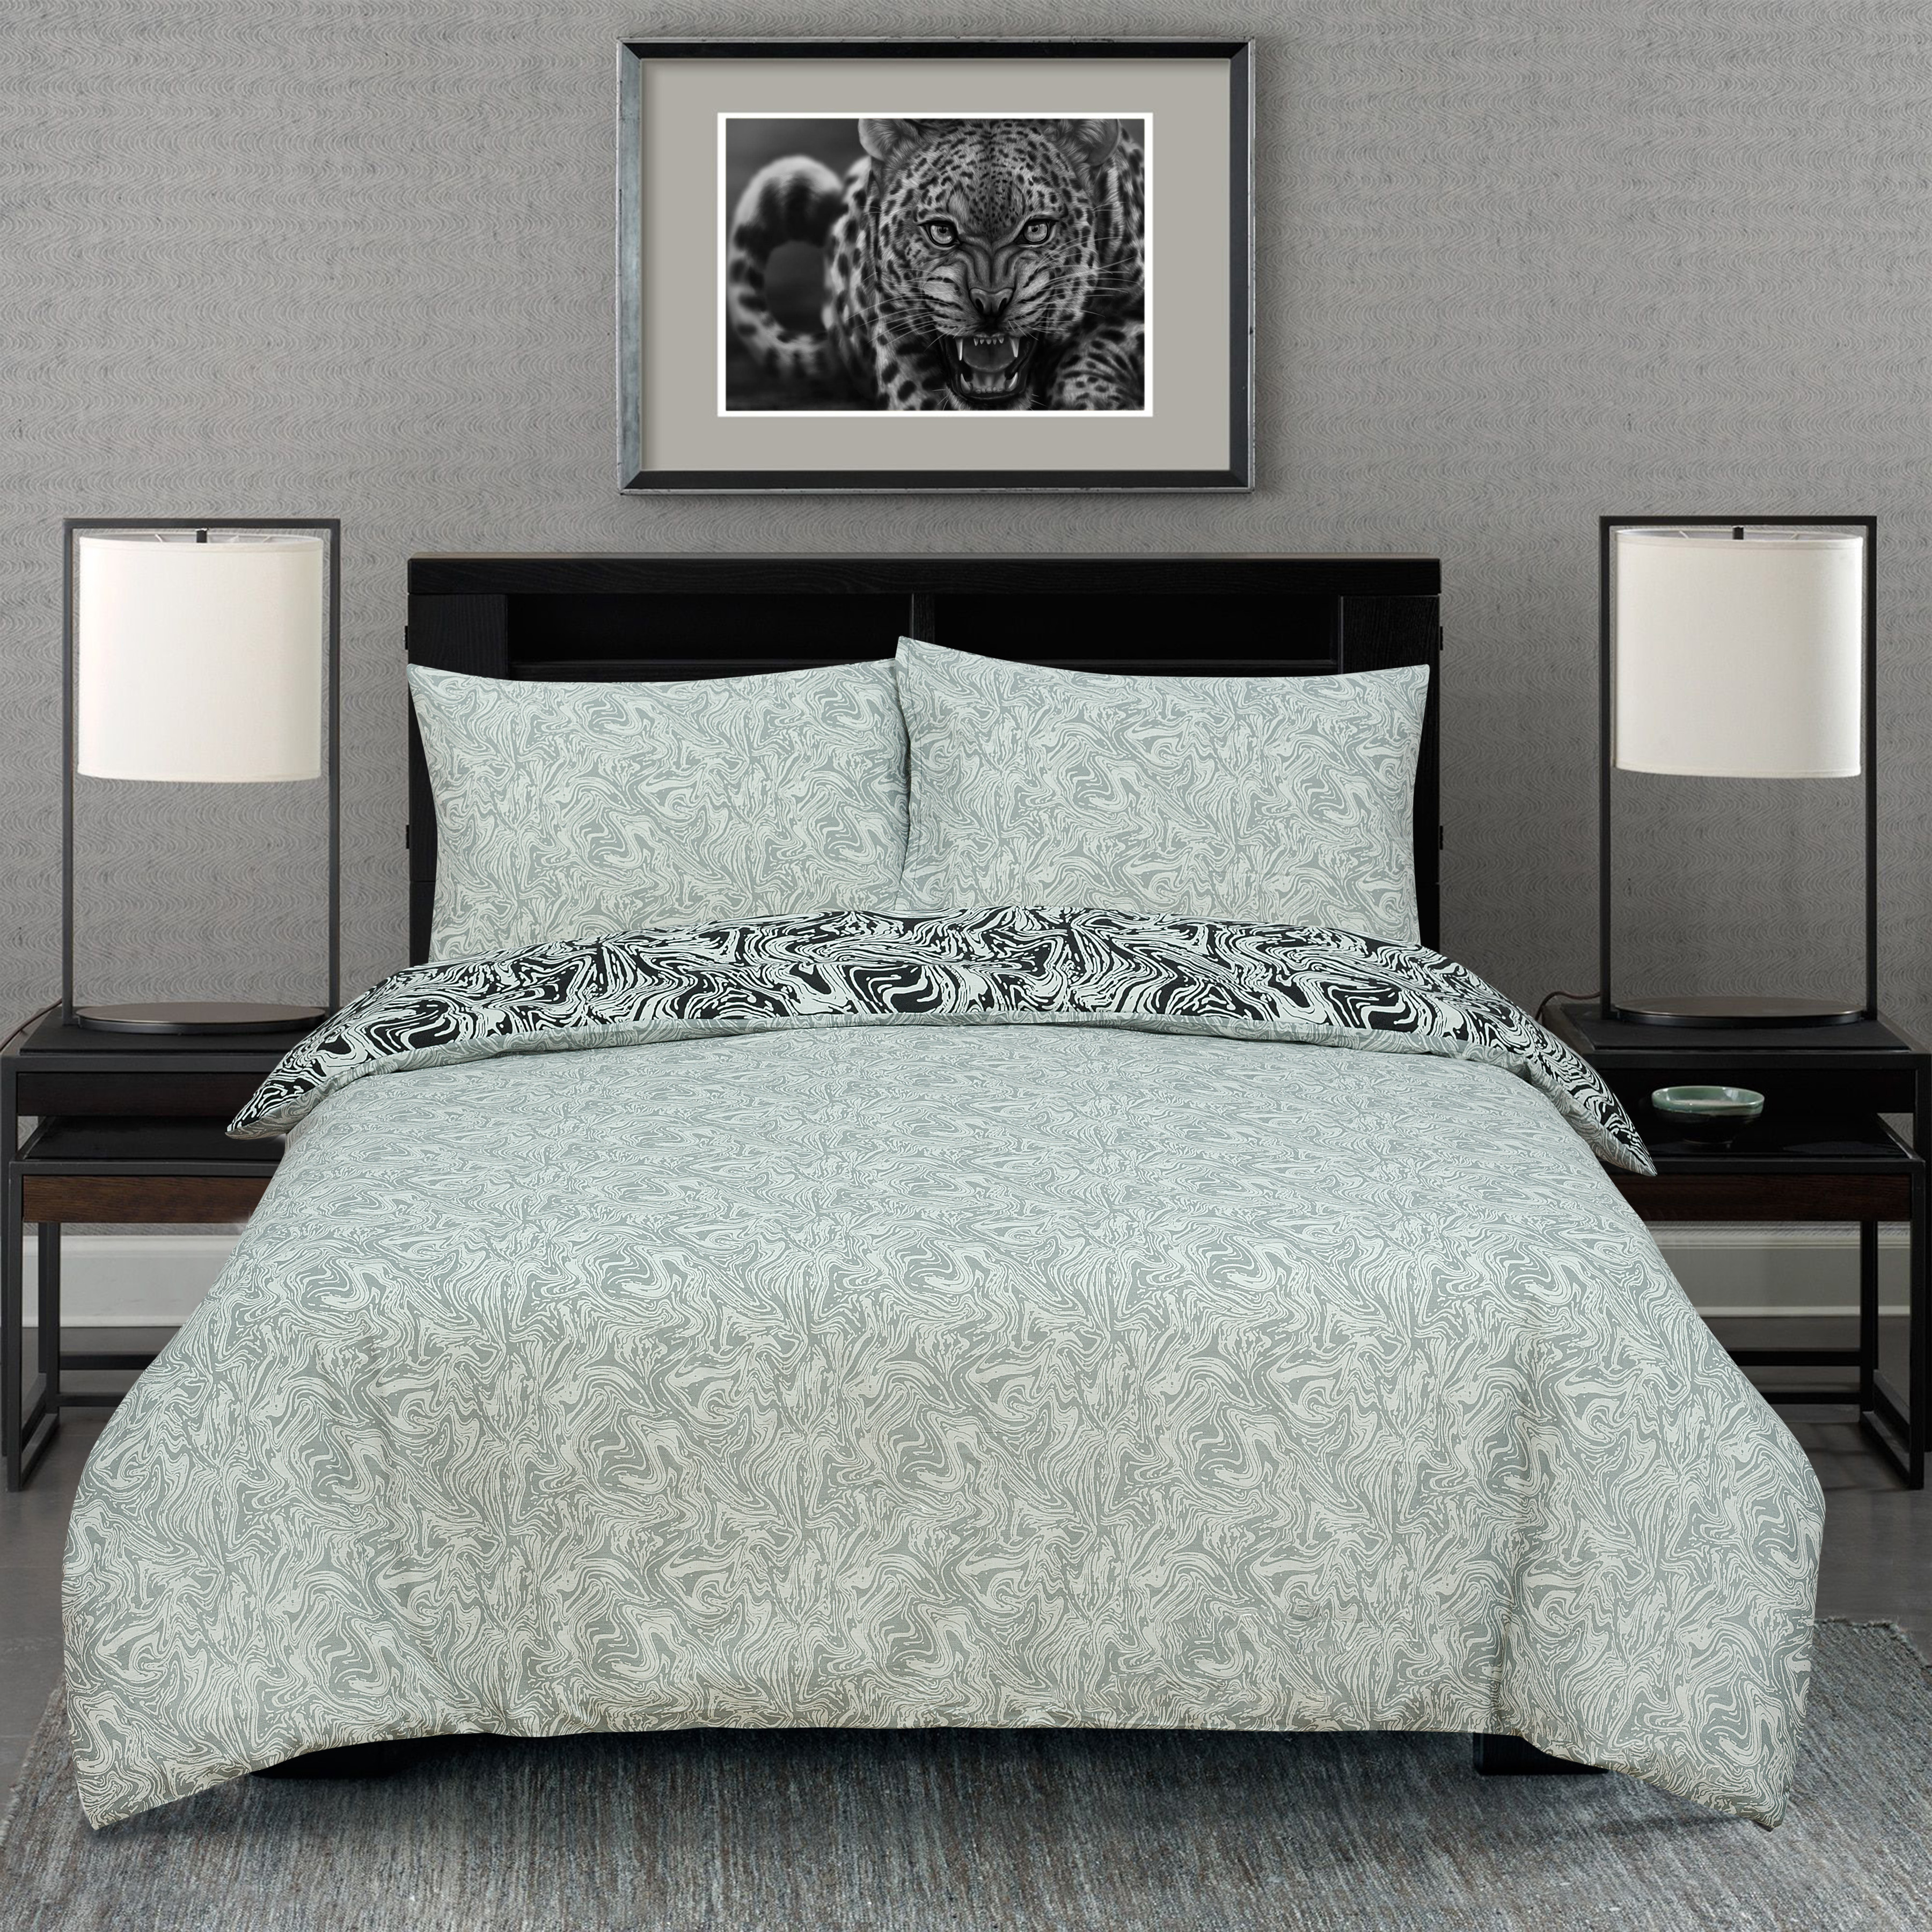 Marble Black Reversible Rotary Double Bed Duvet Quilt Cover Set